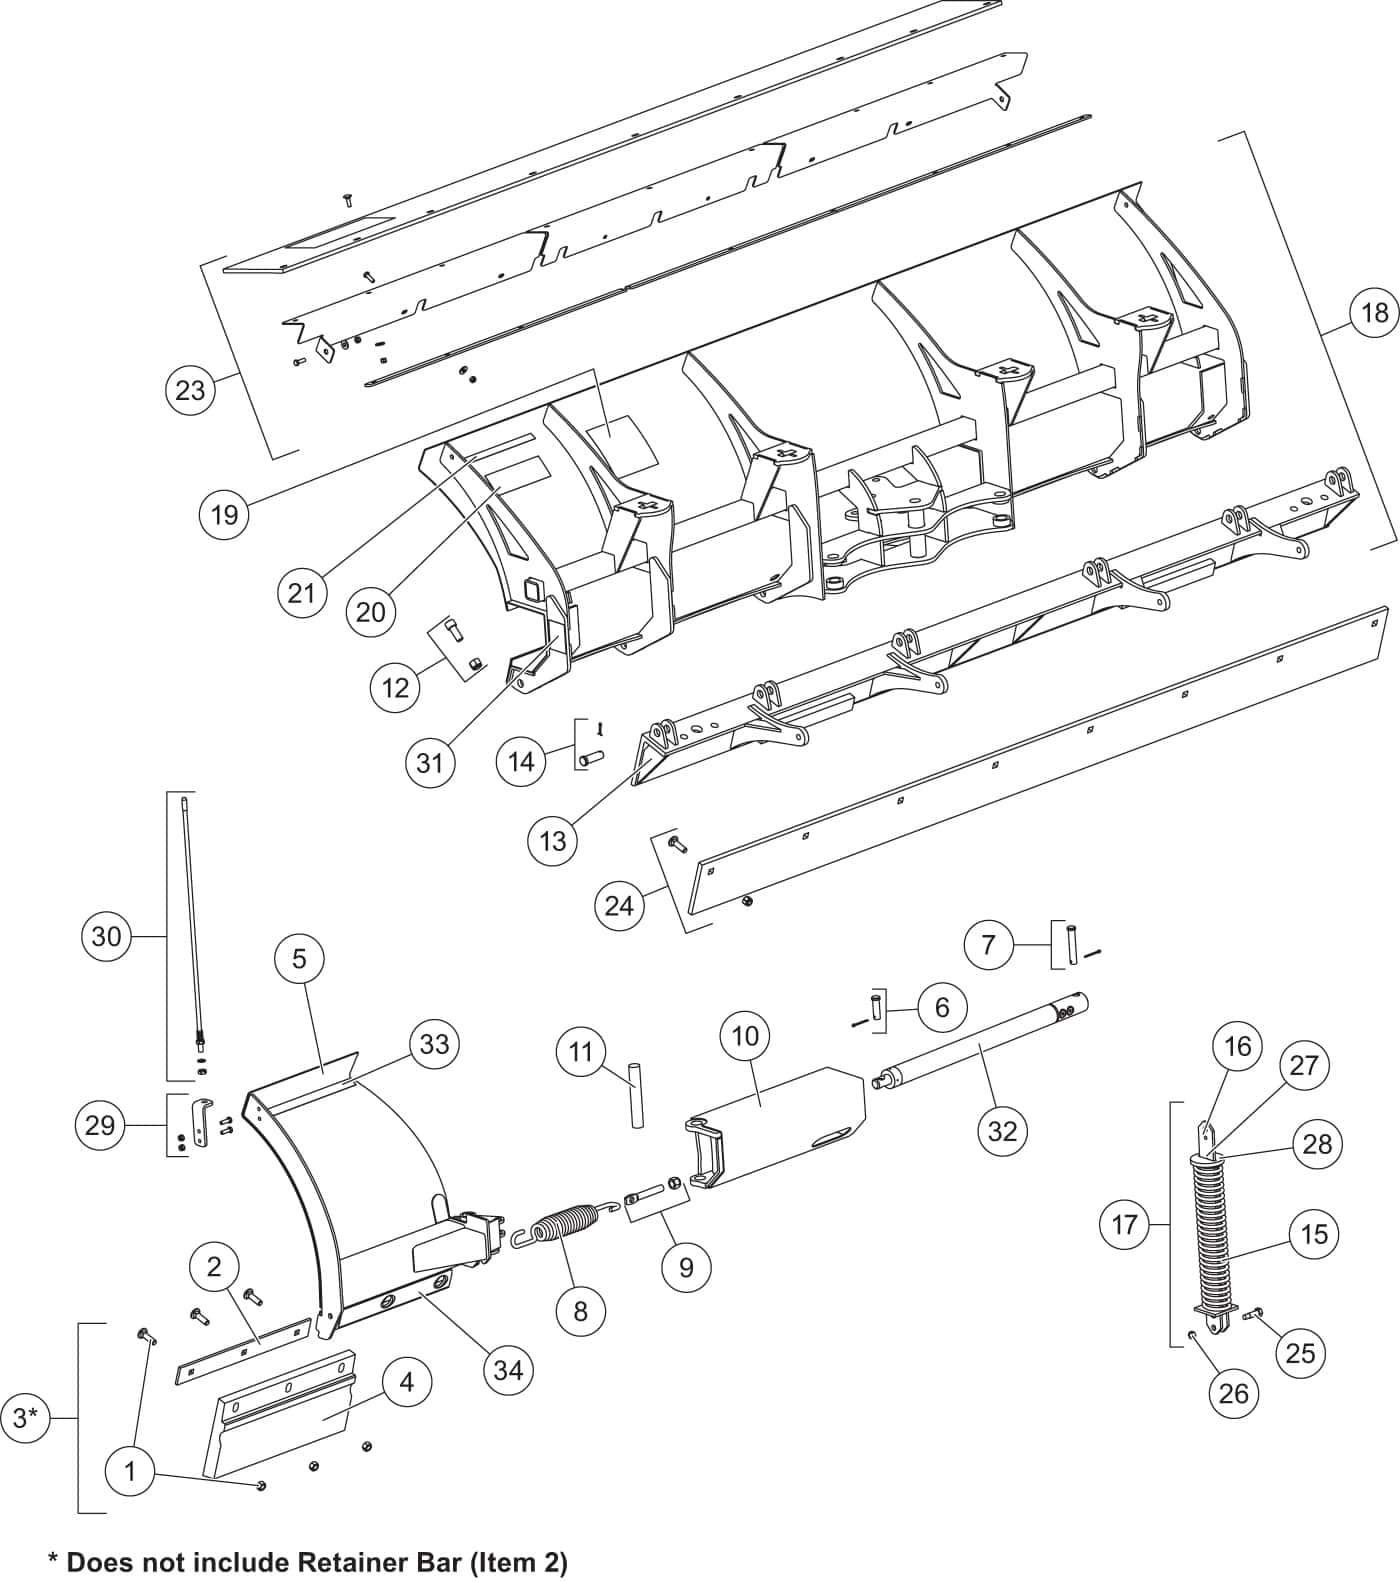 Fisher Snow Plow Parts Diagram Iteparts Intercon Truck Equipment ...